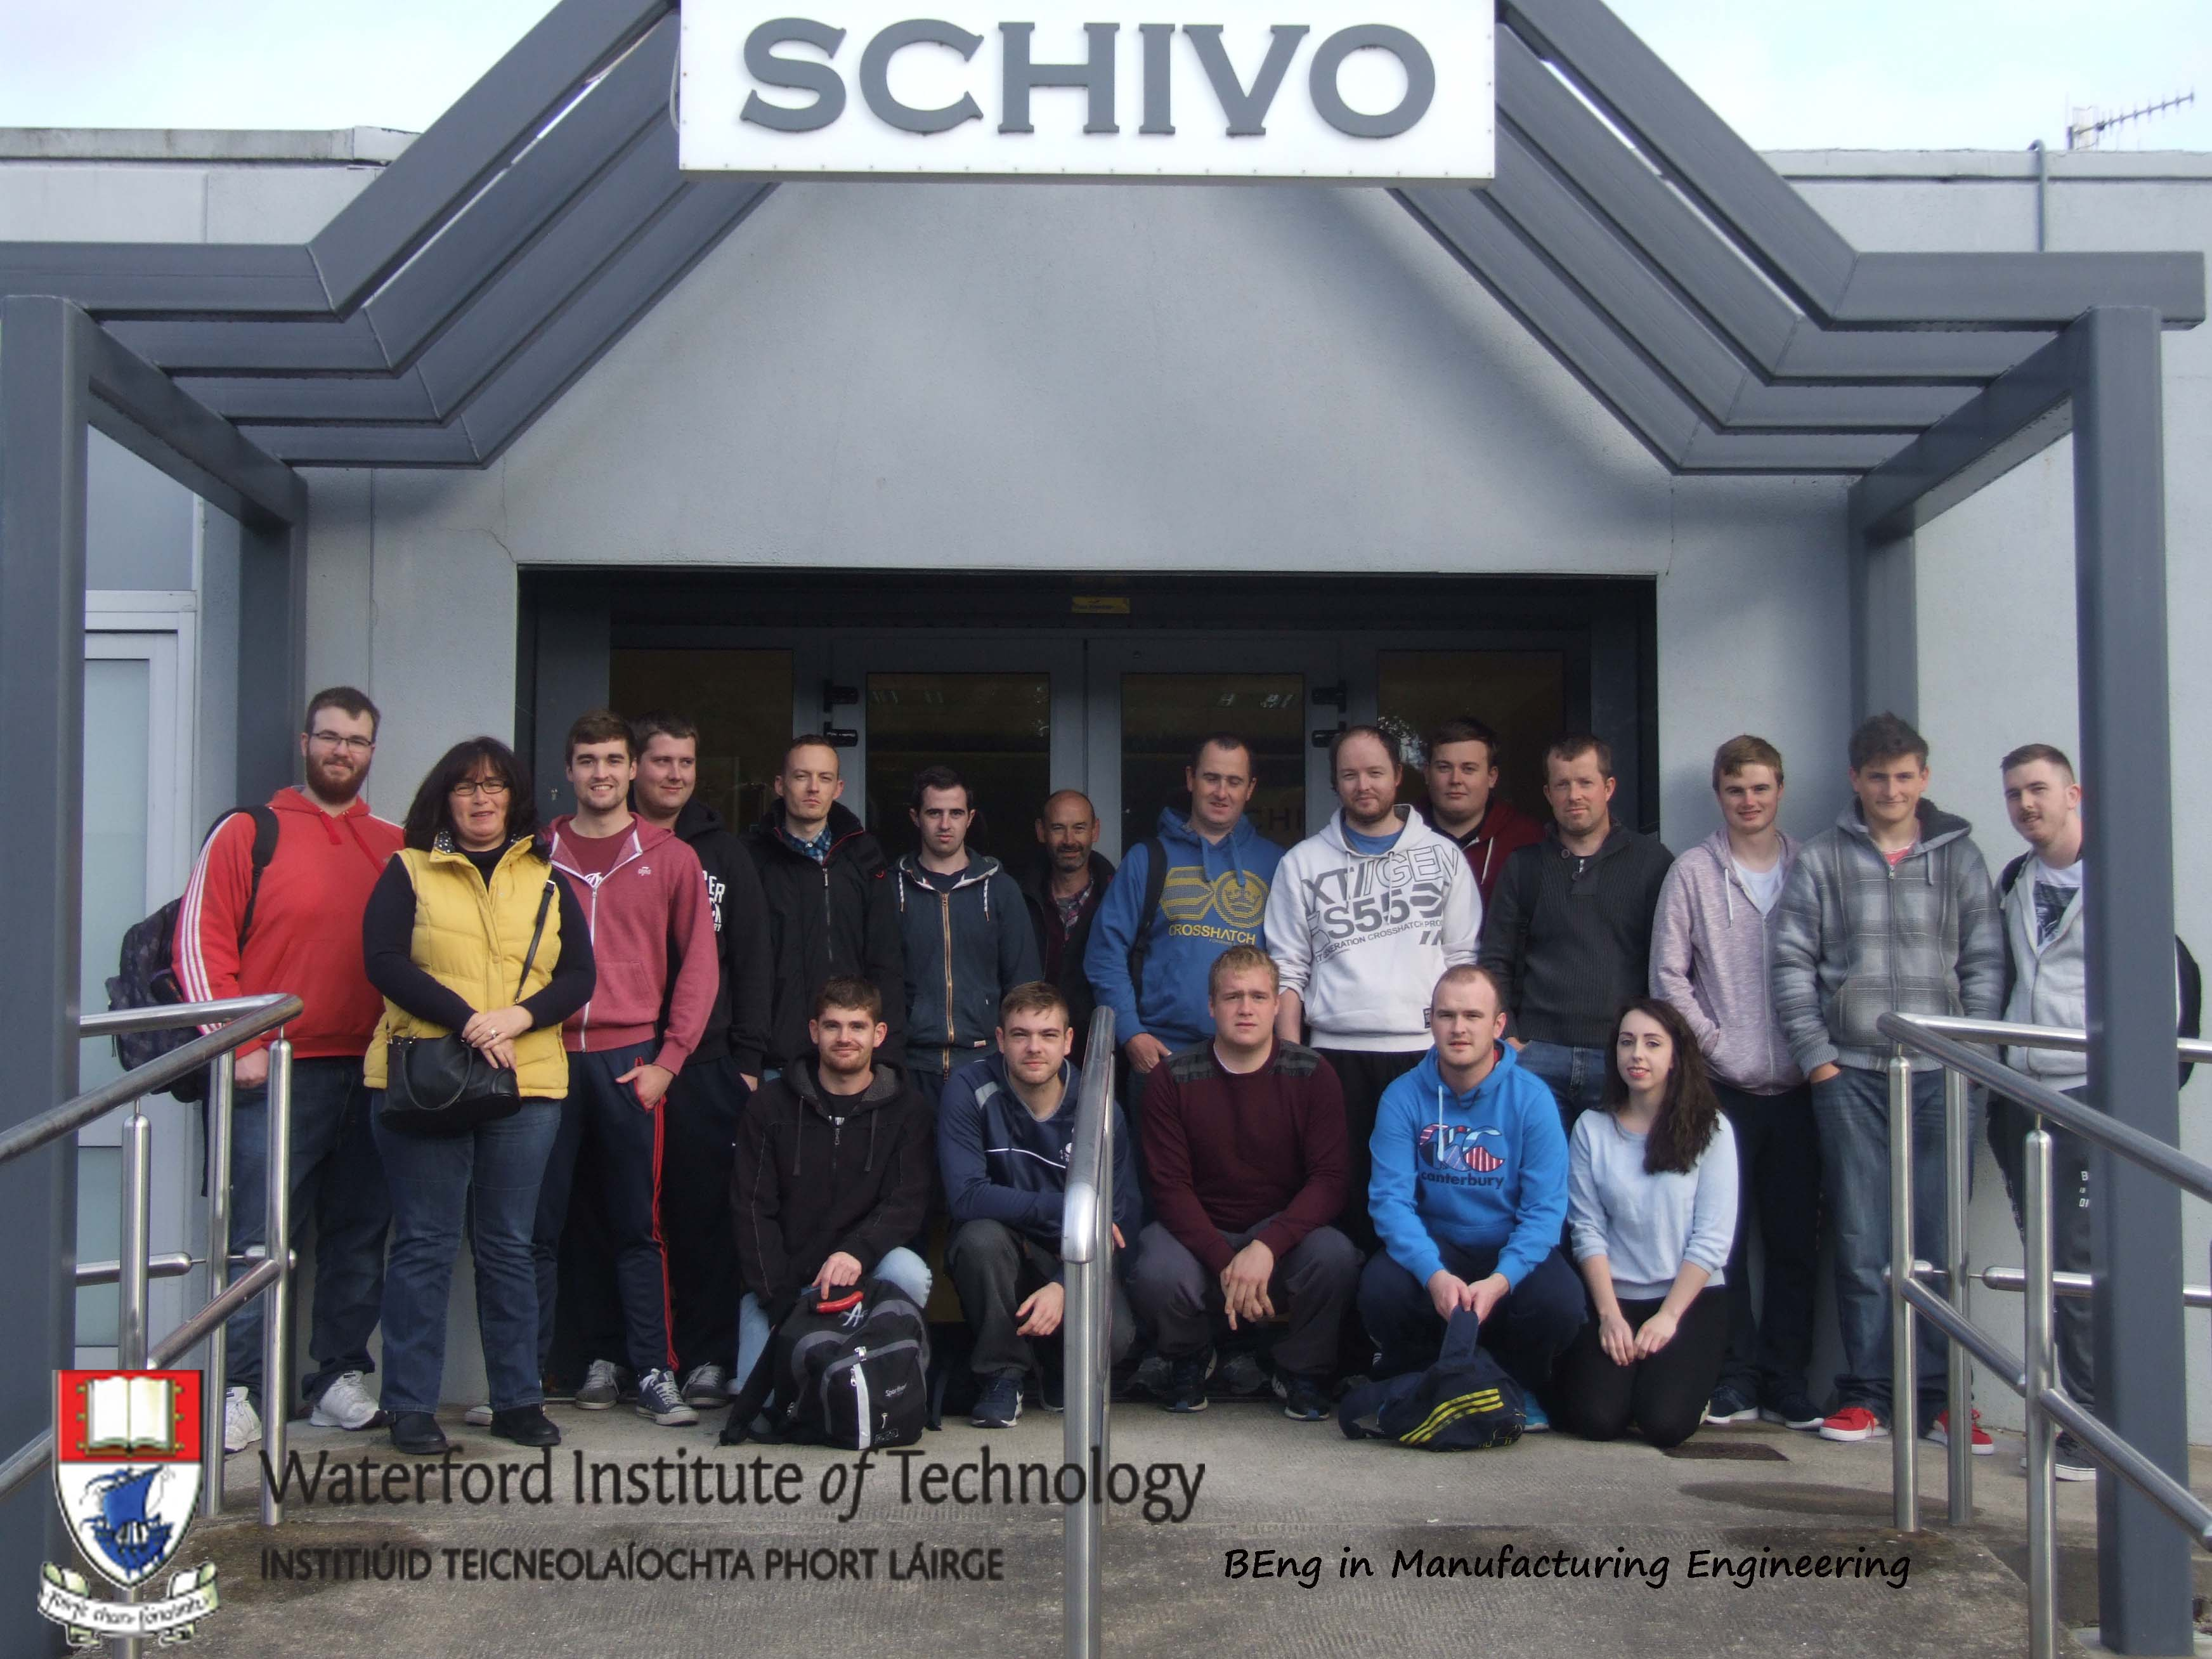 The BEng in Manufacturing Engineering students visit Schivo